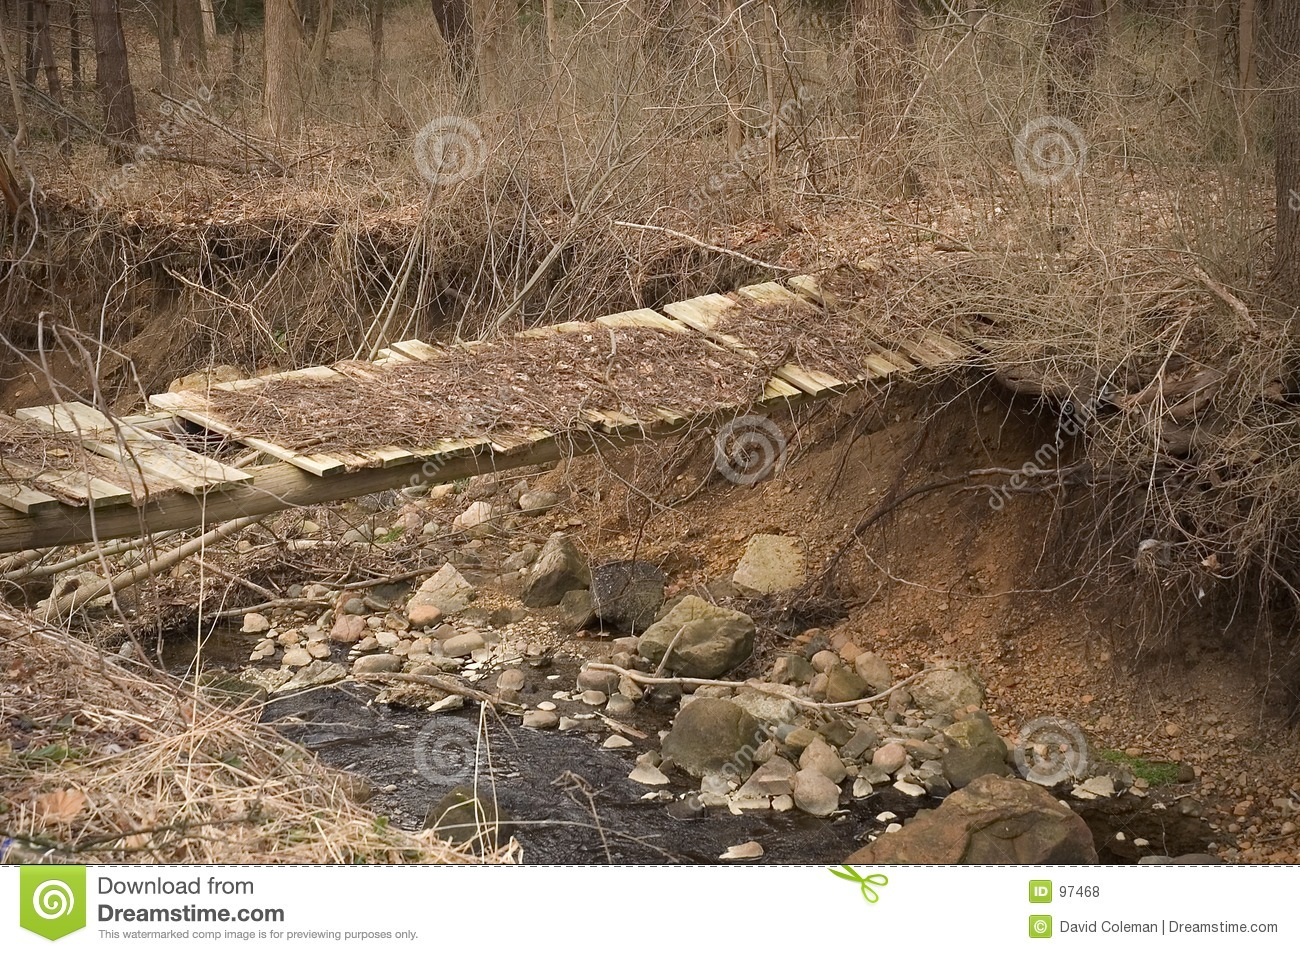 creek. The bridge has fallen into dis-repair and appears quite unsafe